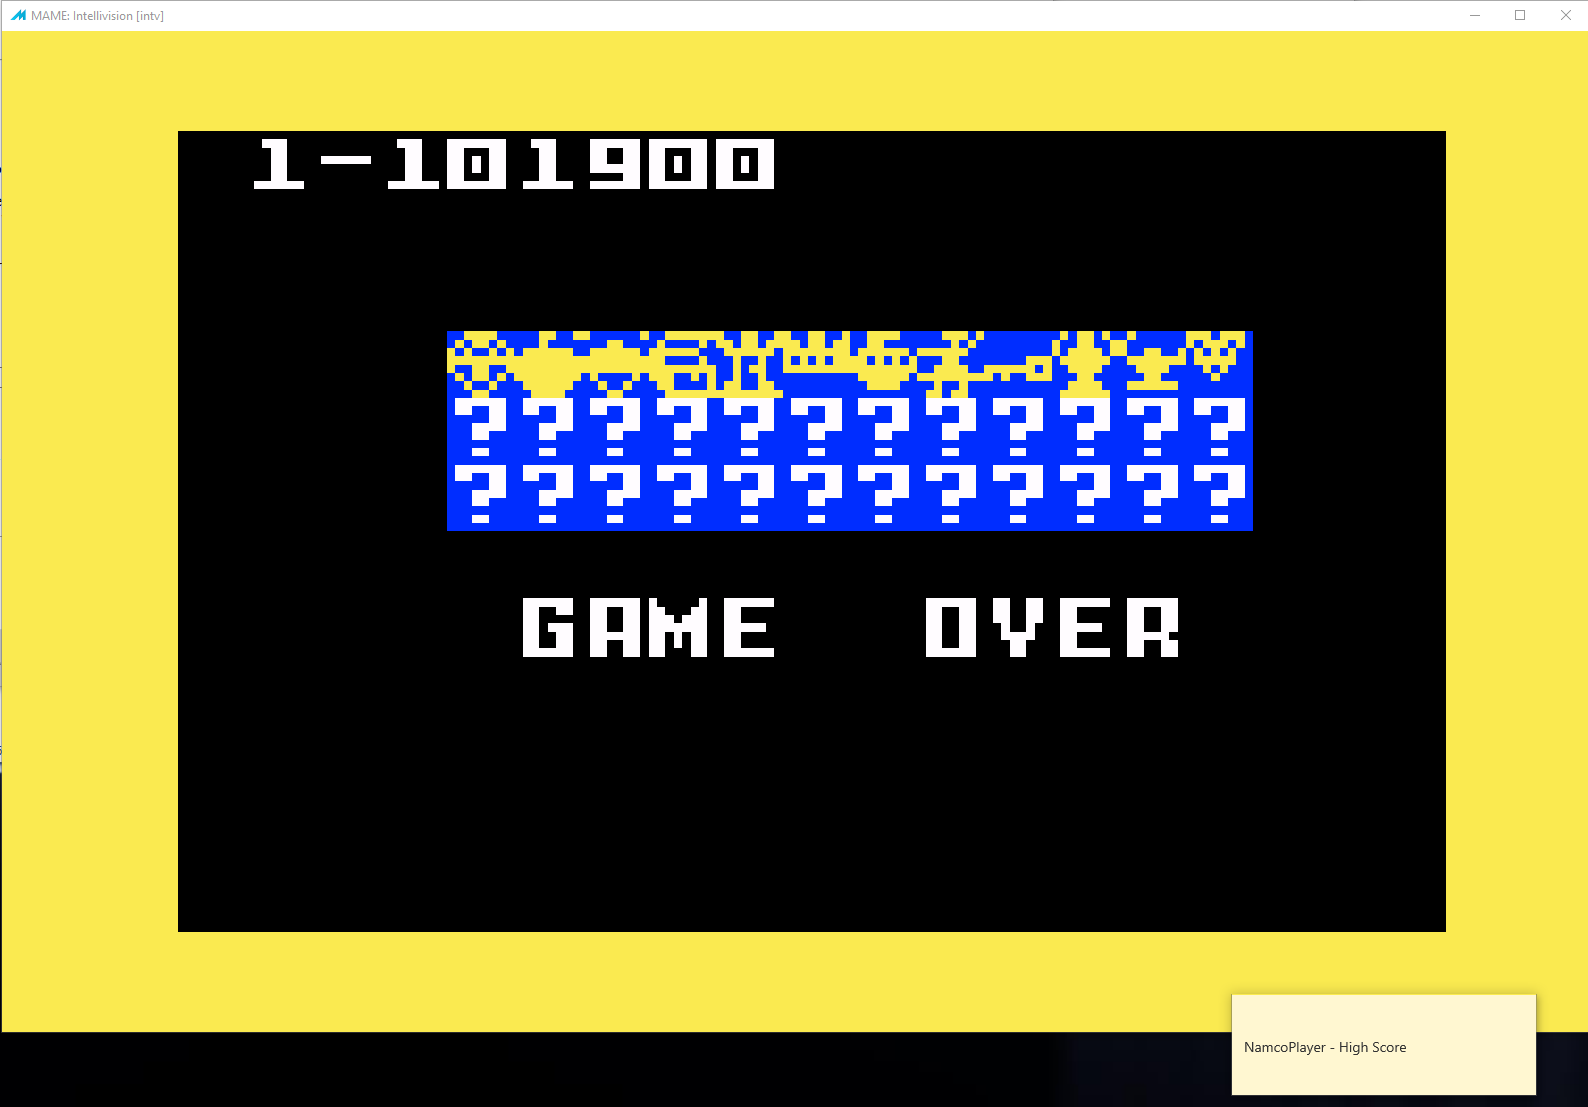 NamcoPlayer: Venture [Skill 4] (Intellivision Emulated) 101,900 points on 2020-11-02 21:32:12